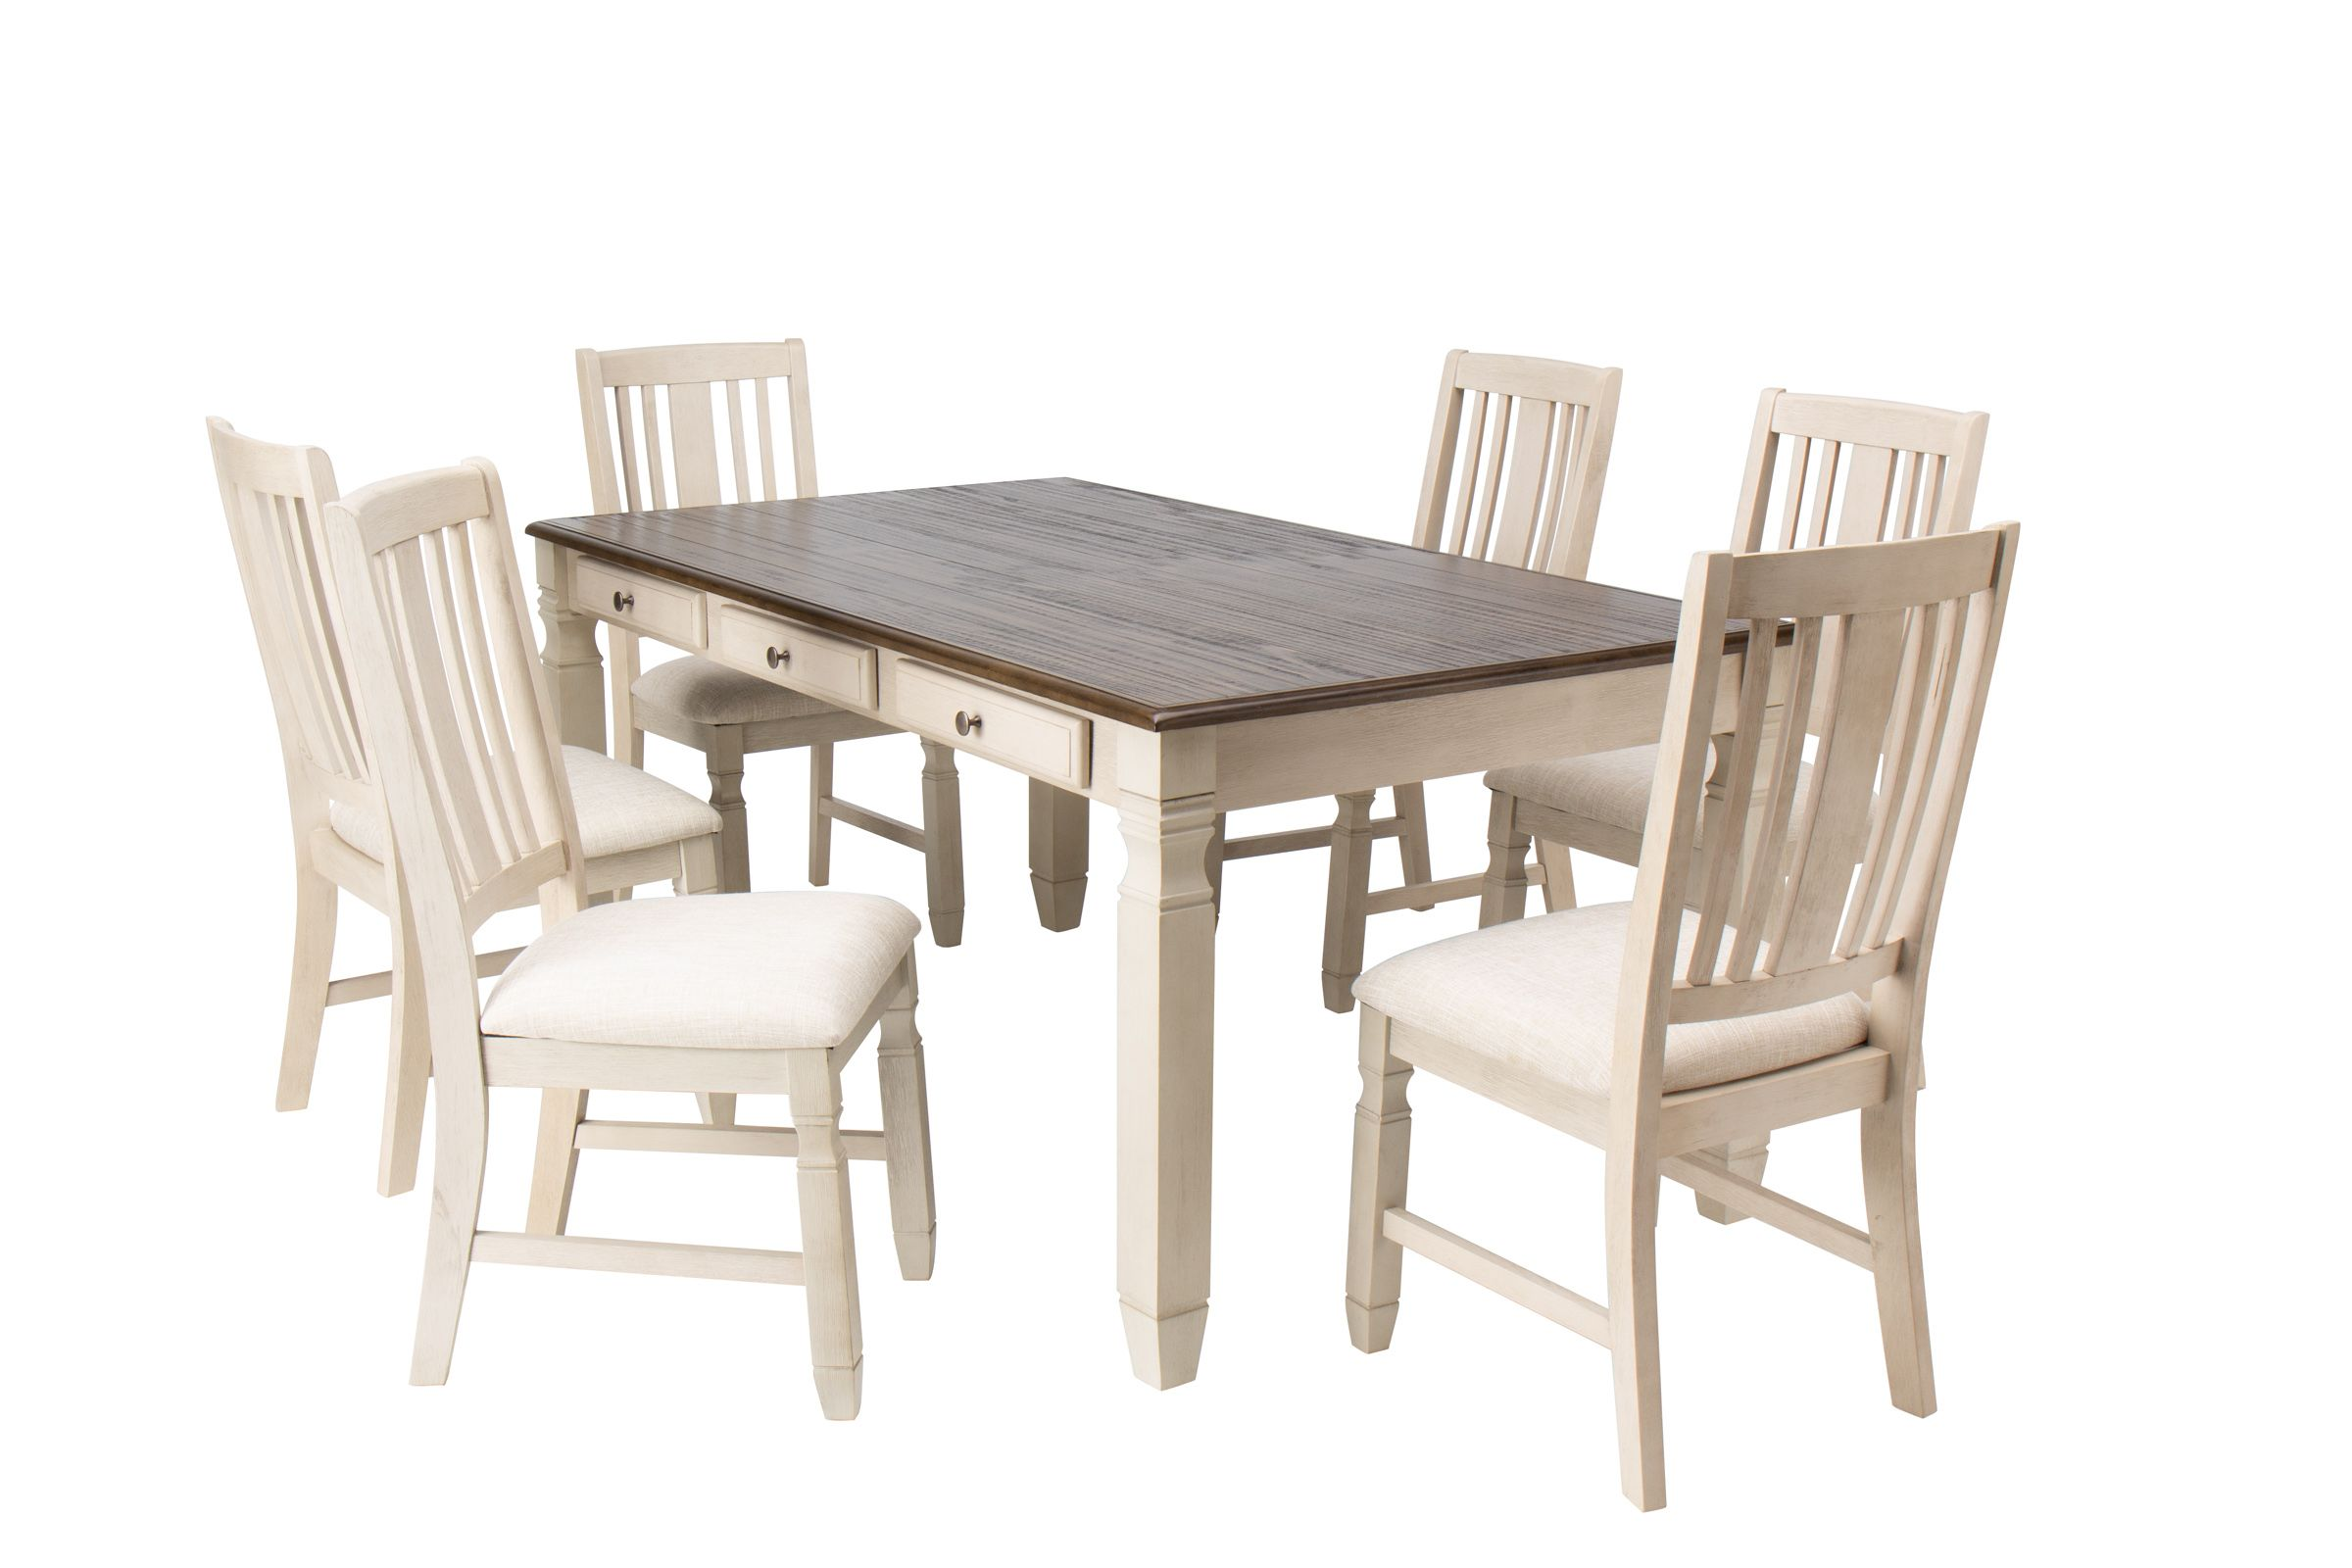 Cucina Letters Kitchen Decor, Venus Dining Table 6 Side Chairs At Gardner White